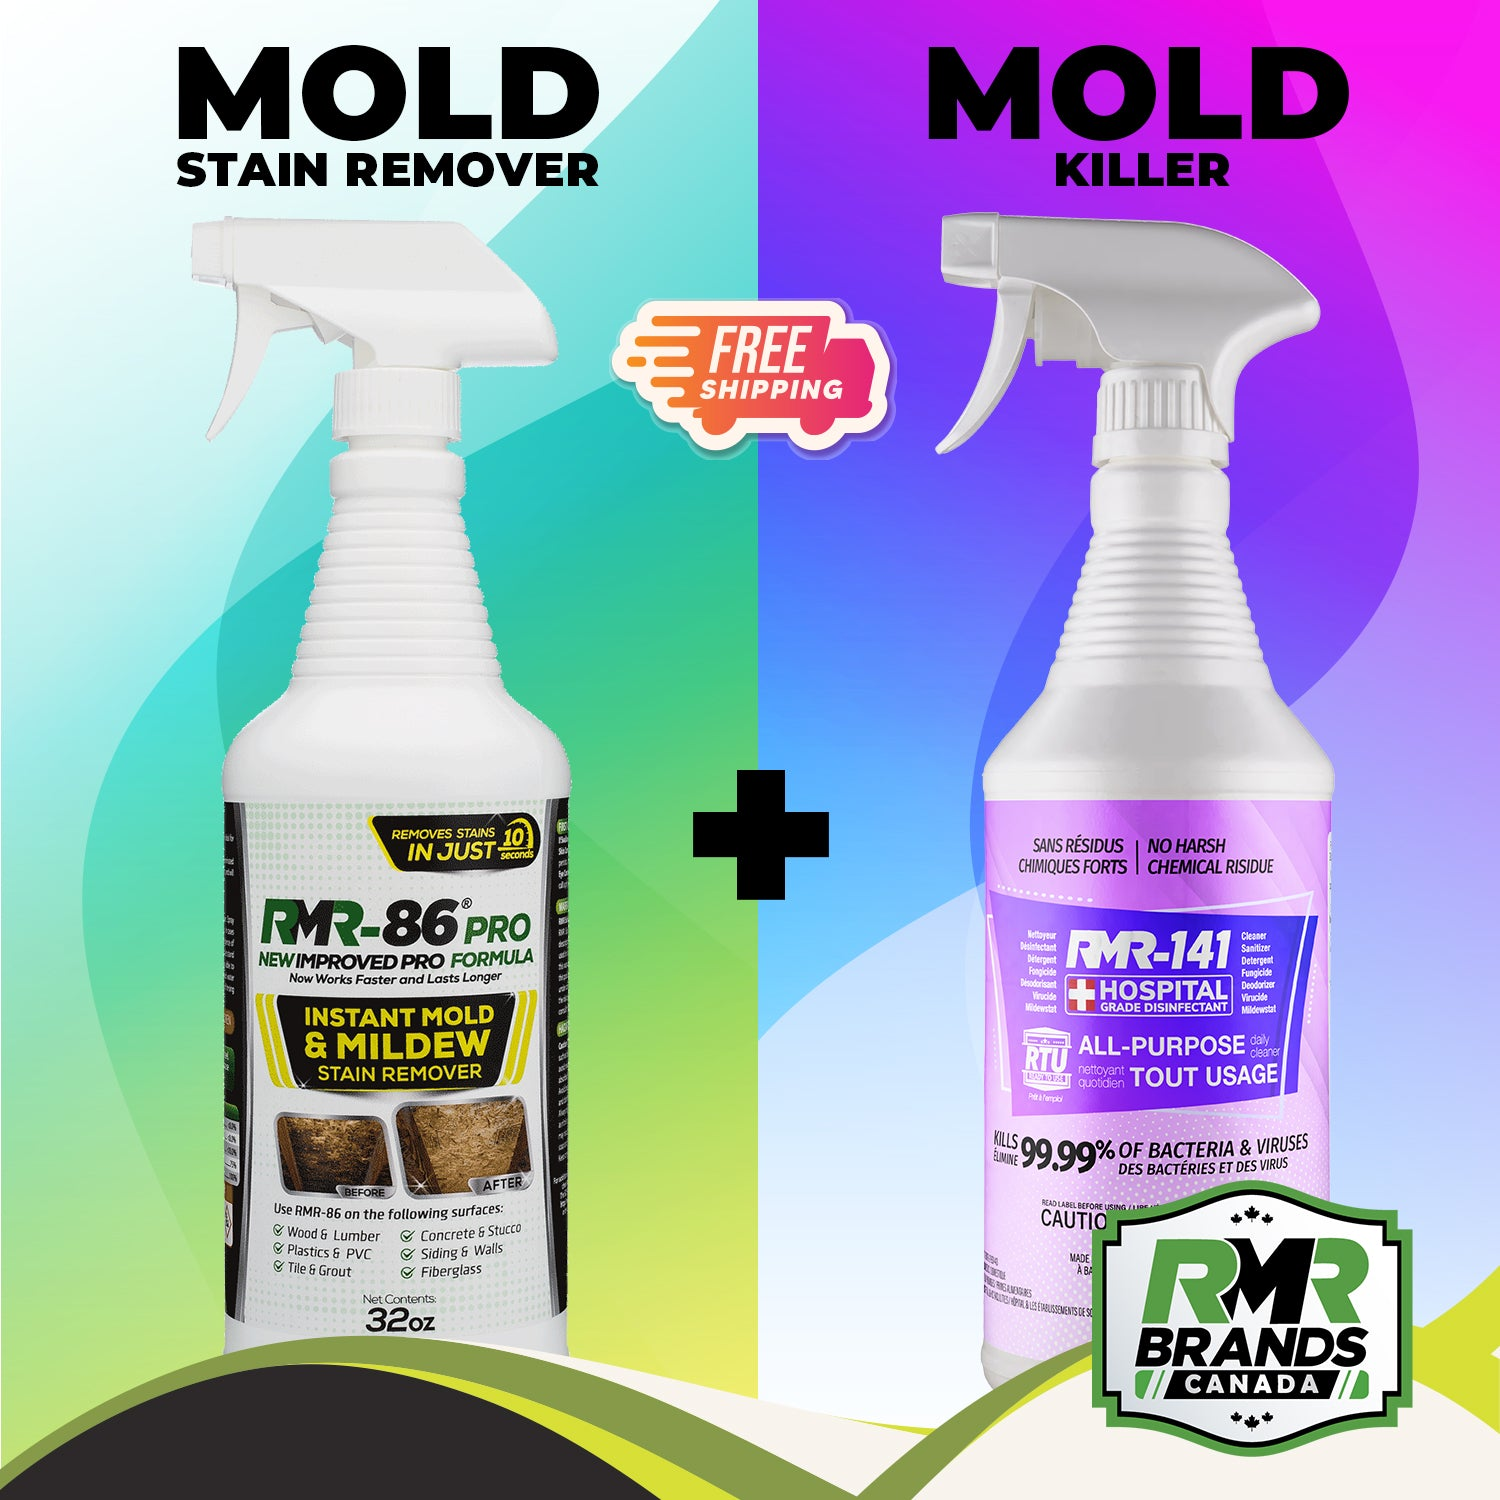 RMR 86 Pro & RMR 141 RTU Combo | Mold Stain Remover and Mold Killer - Easy to use just spray and walk away (32oz / each)